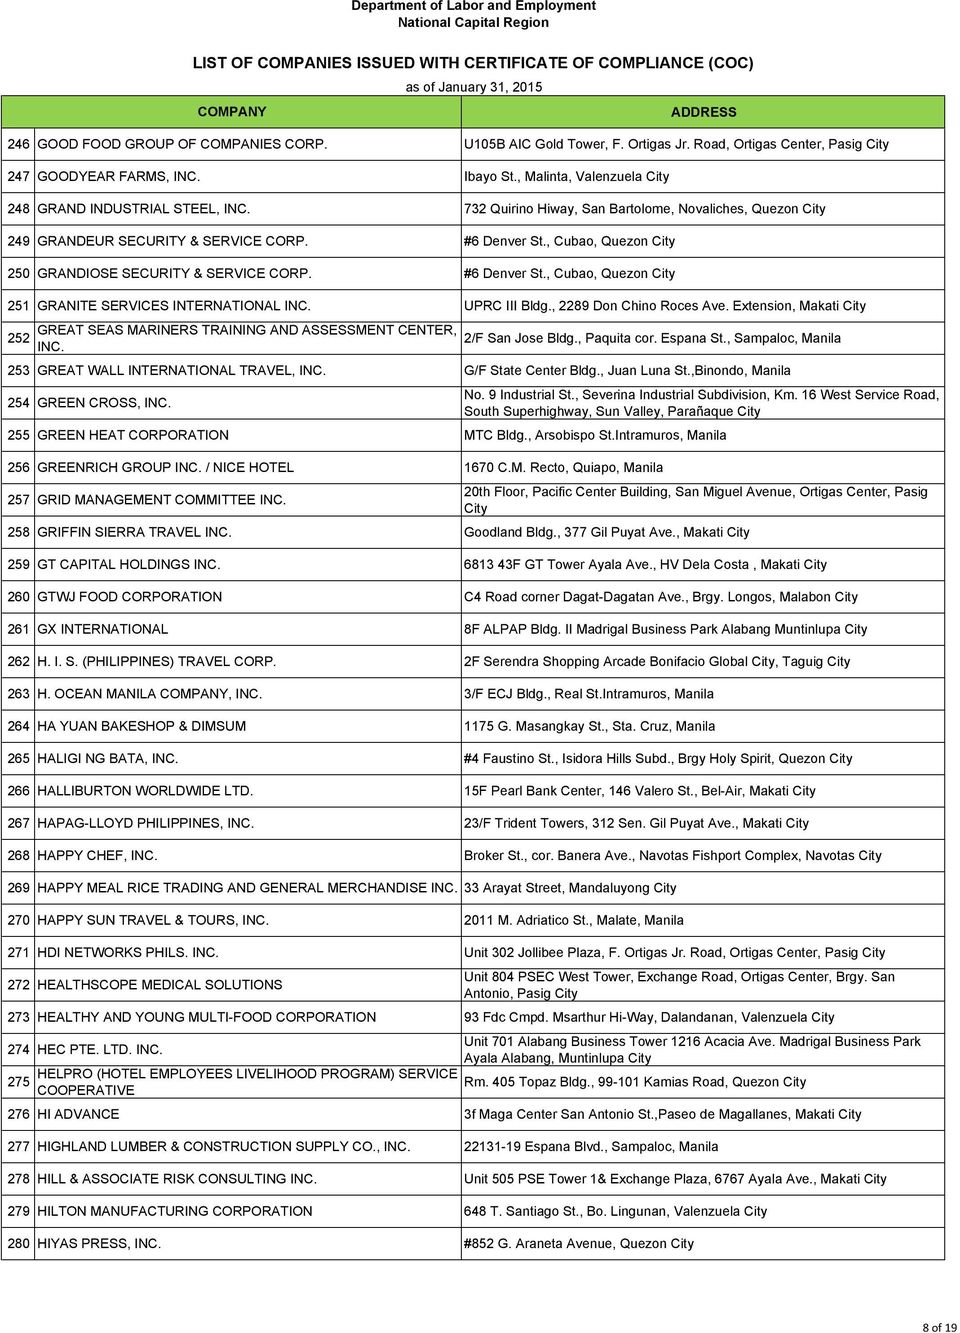 LIST OF COMPANIES ISSUED WITH CERTIFICATE OF COMPLIANCE (COC